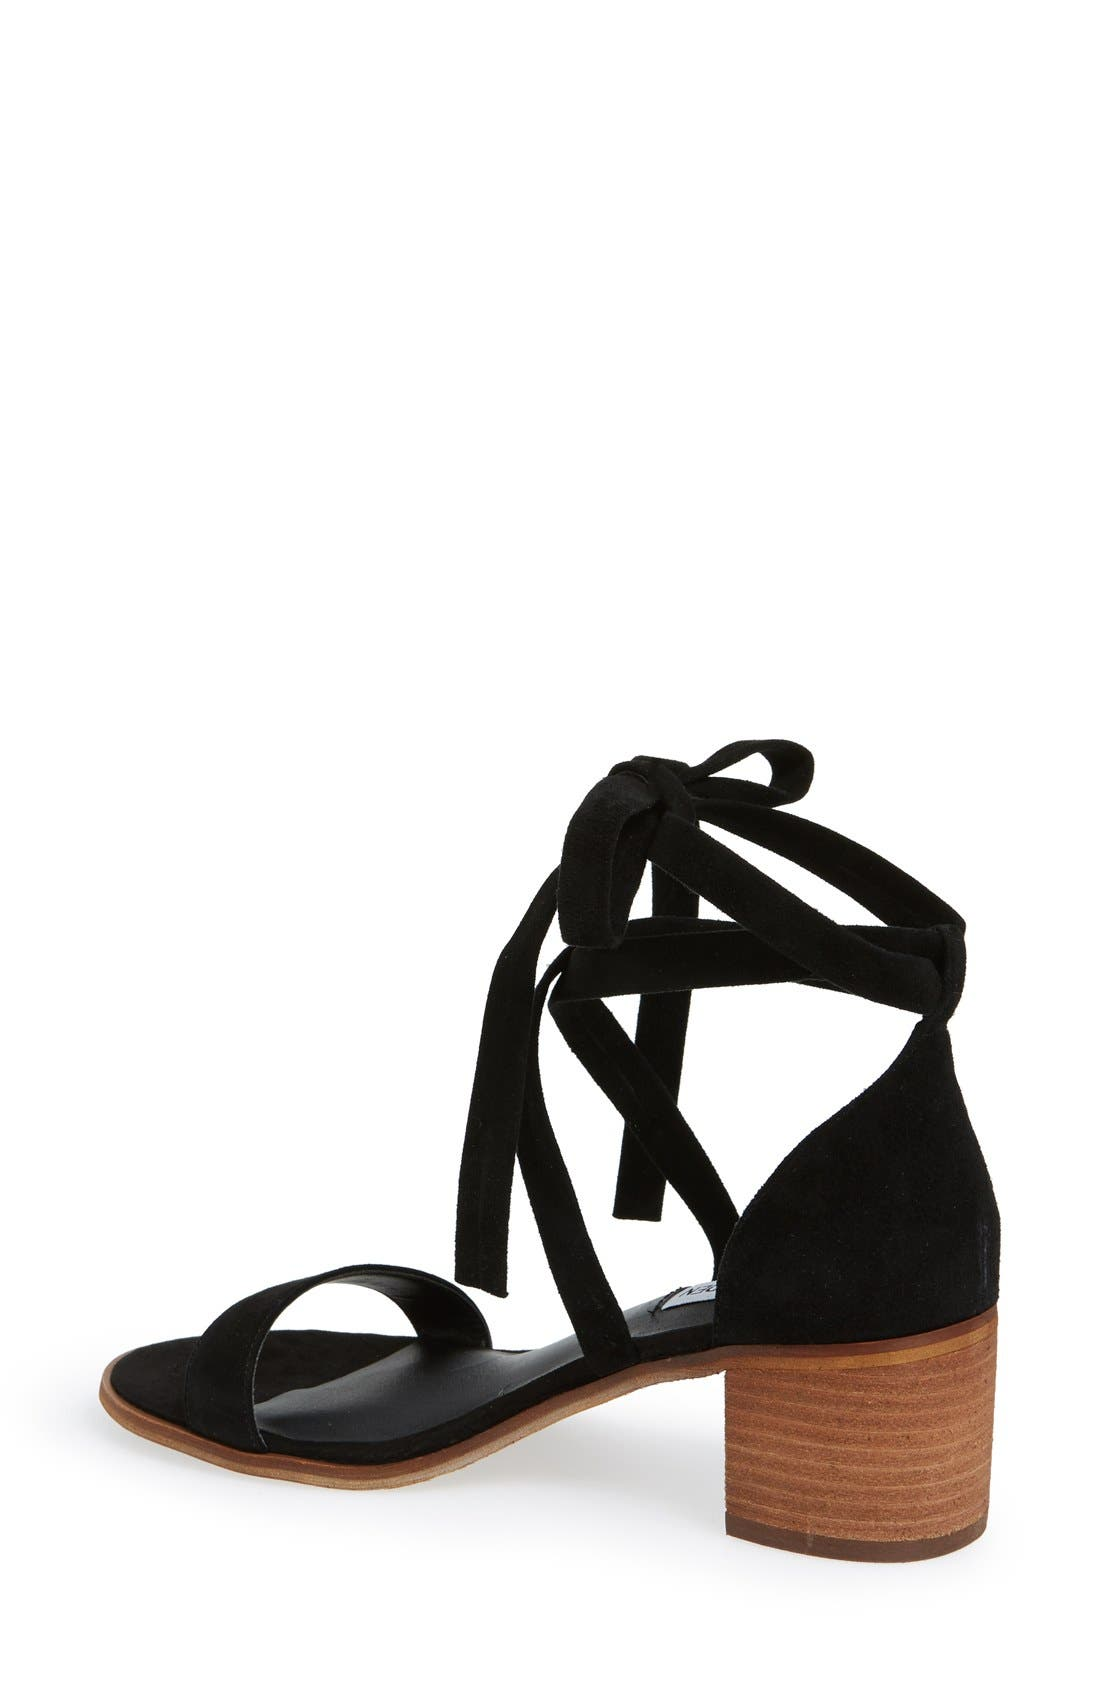 'Rizzaa' Ankle Strap Sandal,                             Alternate thumbnail 3, color,                             Black Suede